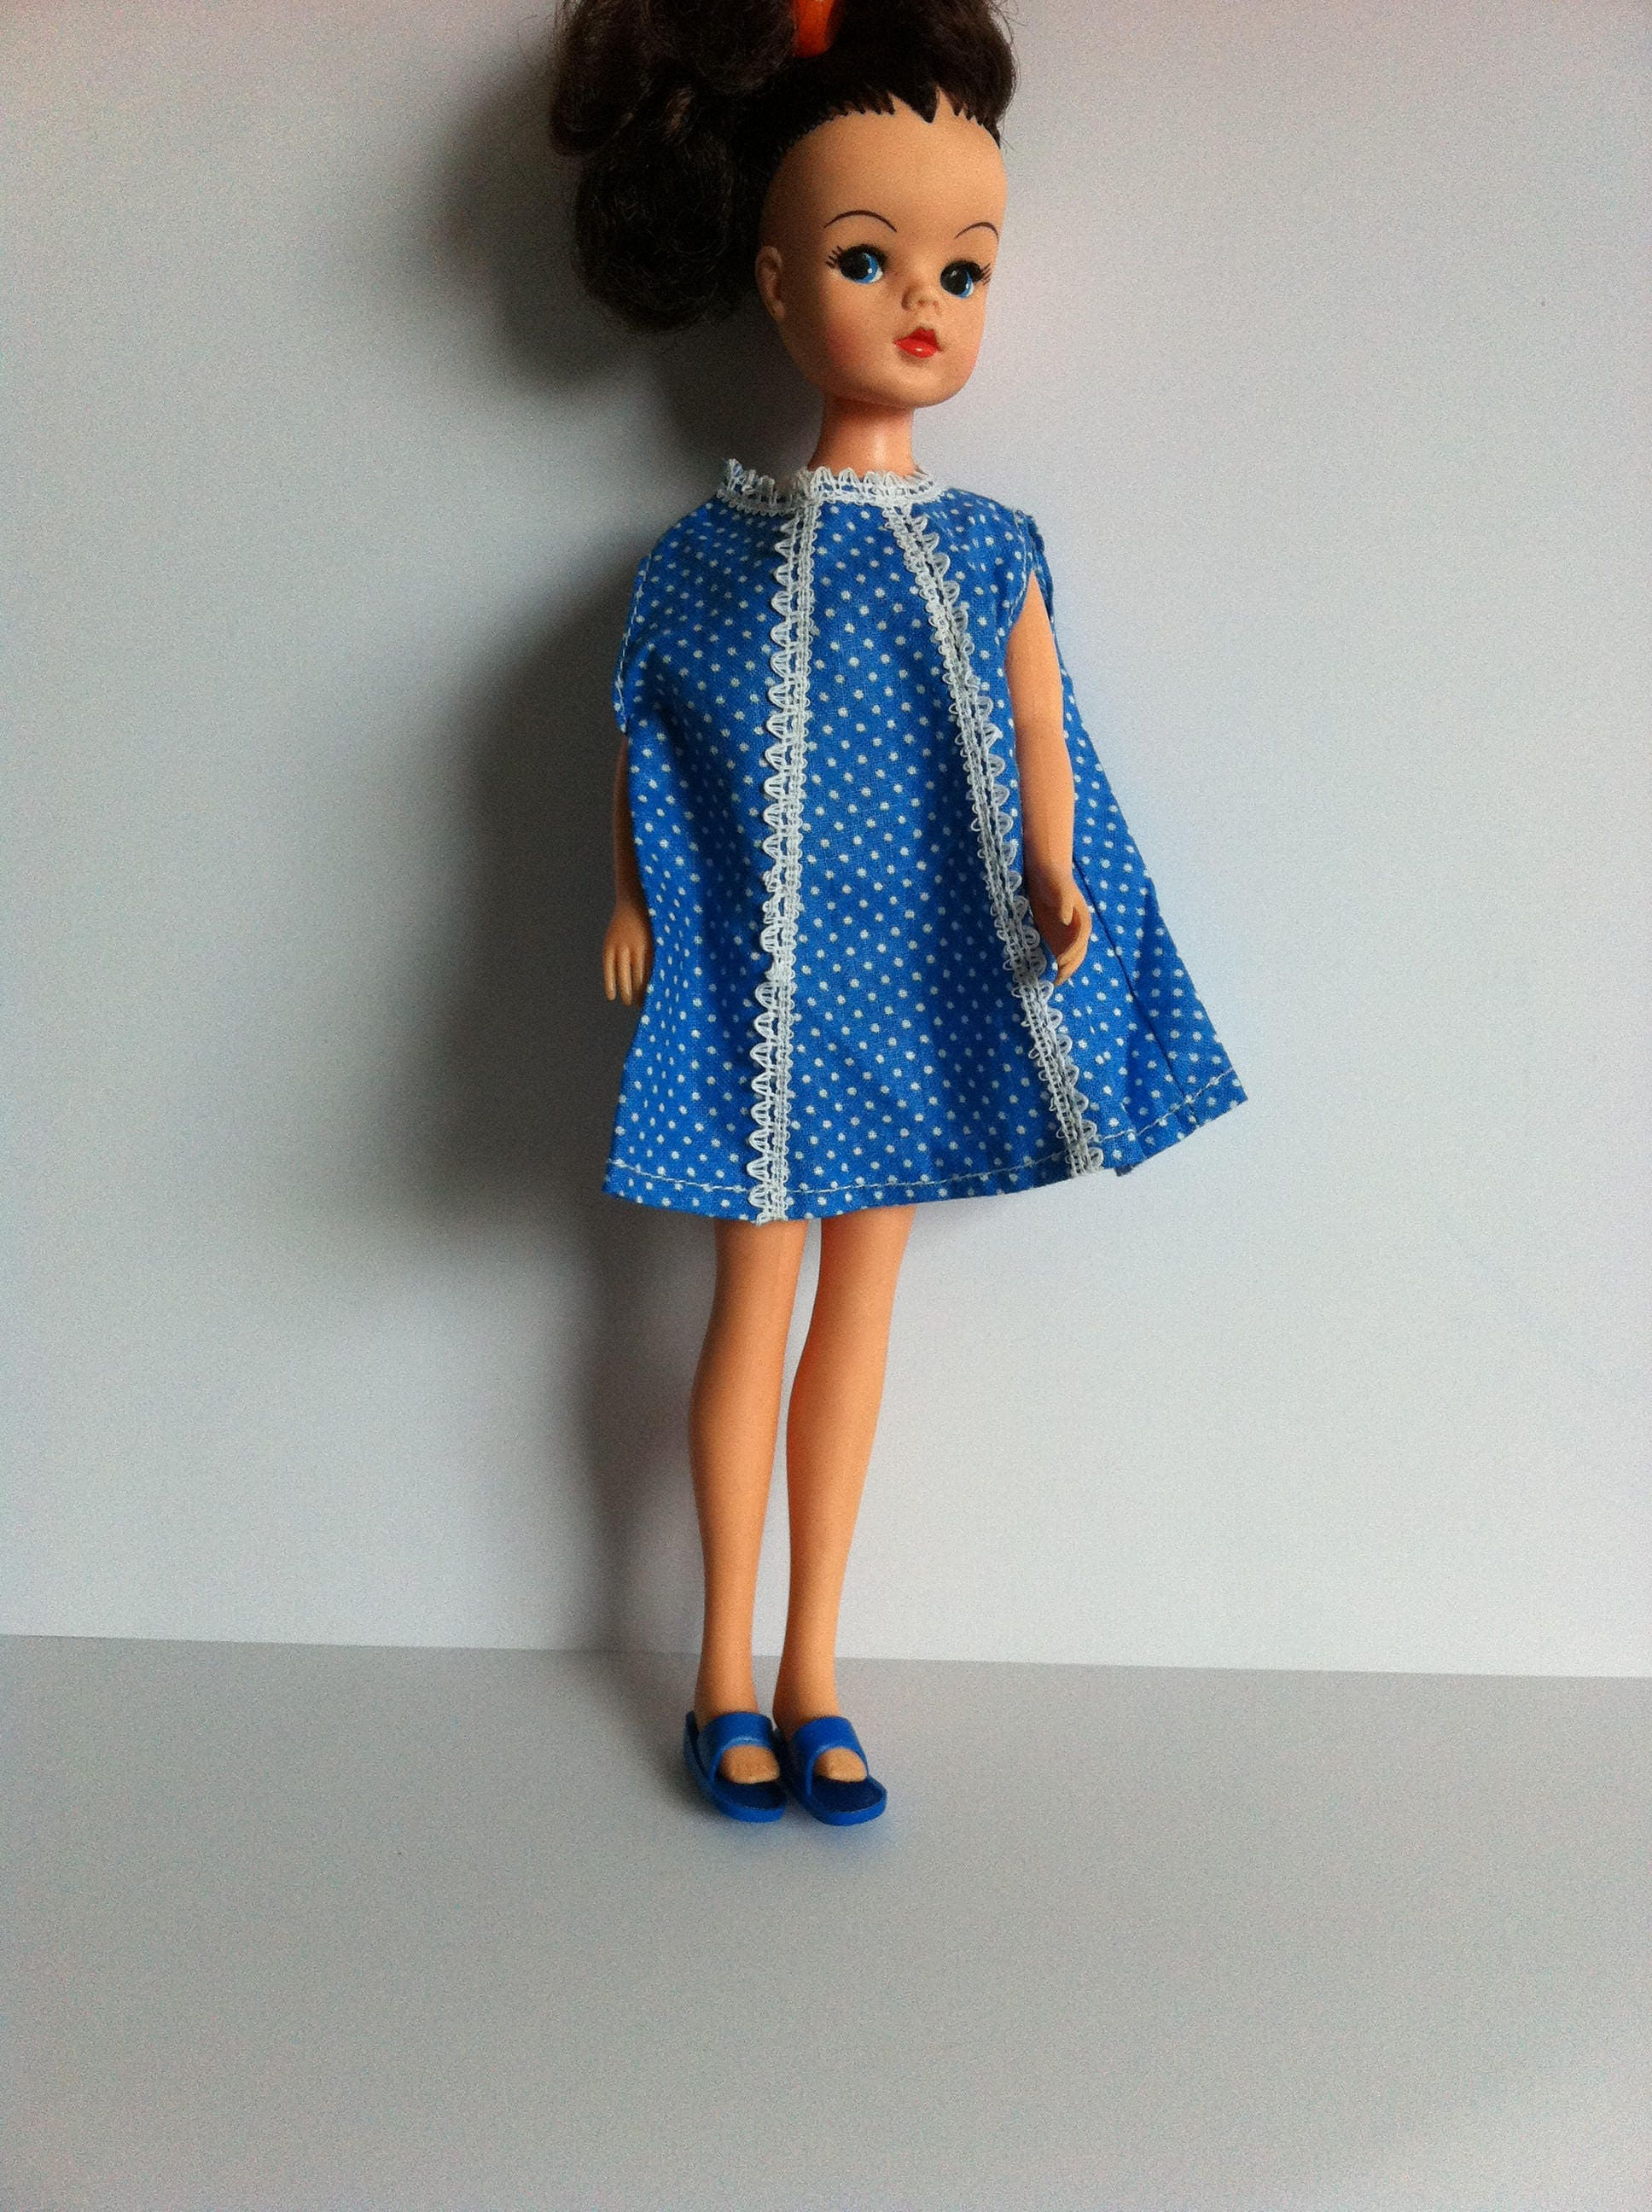 vintage sindy doll clothes blue mix and match sandals blue